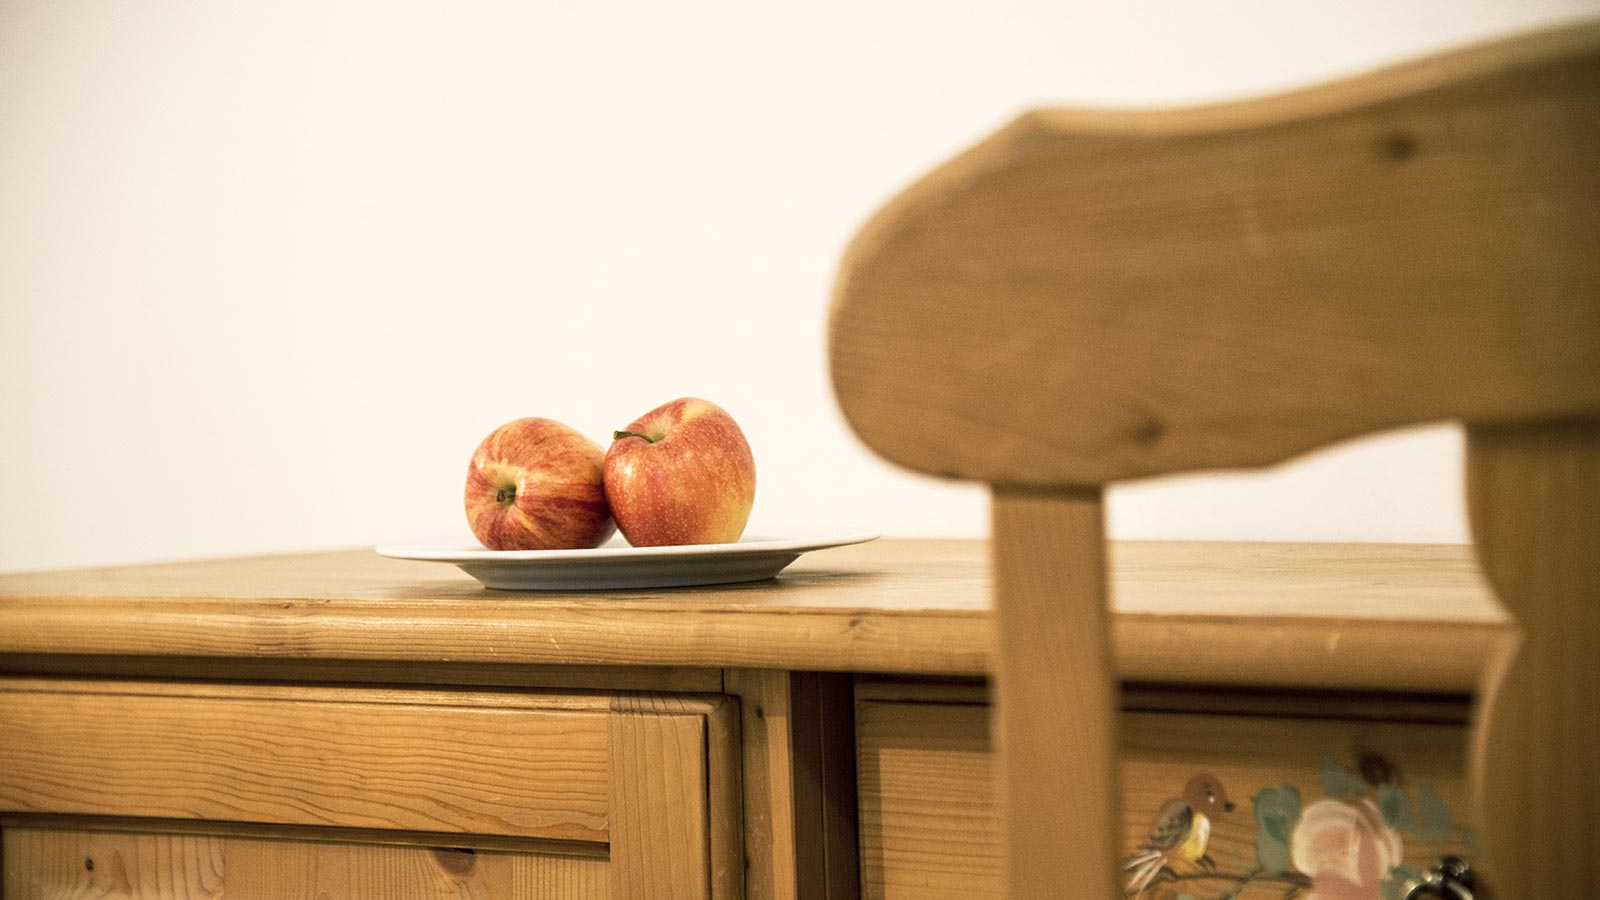 Wooden case bench, on which is placed a plate with two red apples, and blurred backrest of a wooden chair